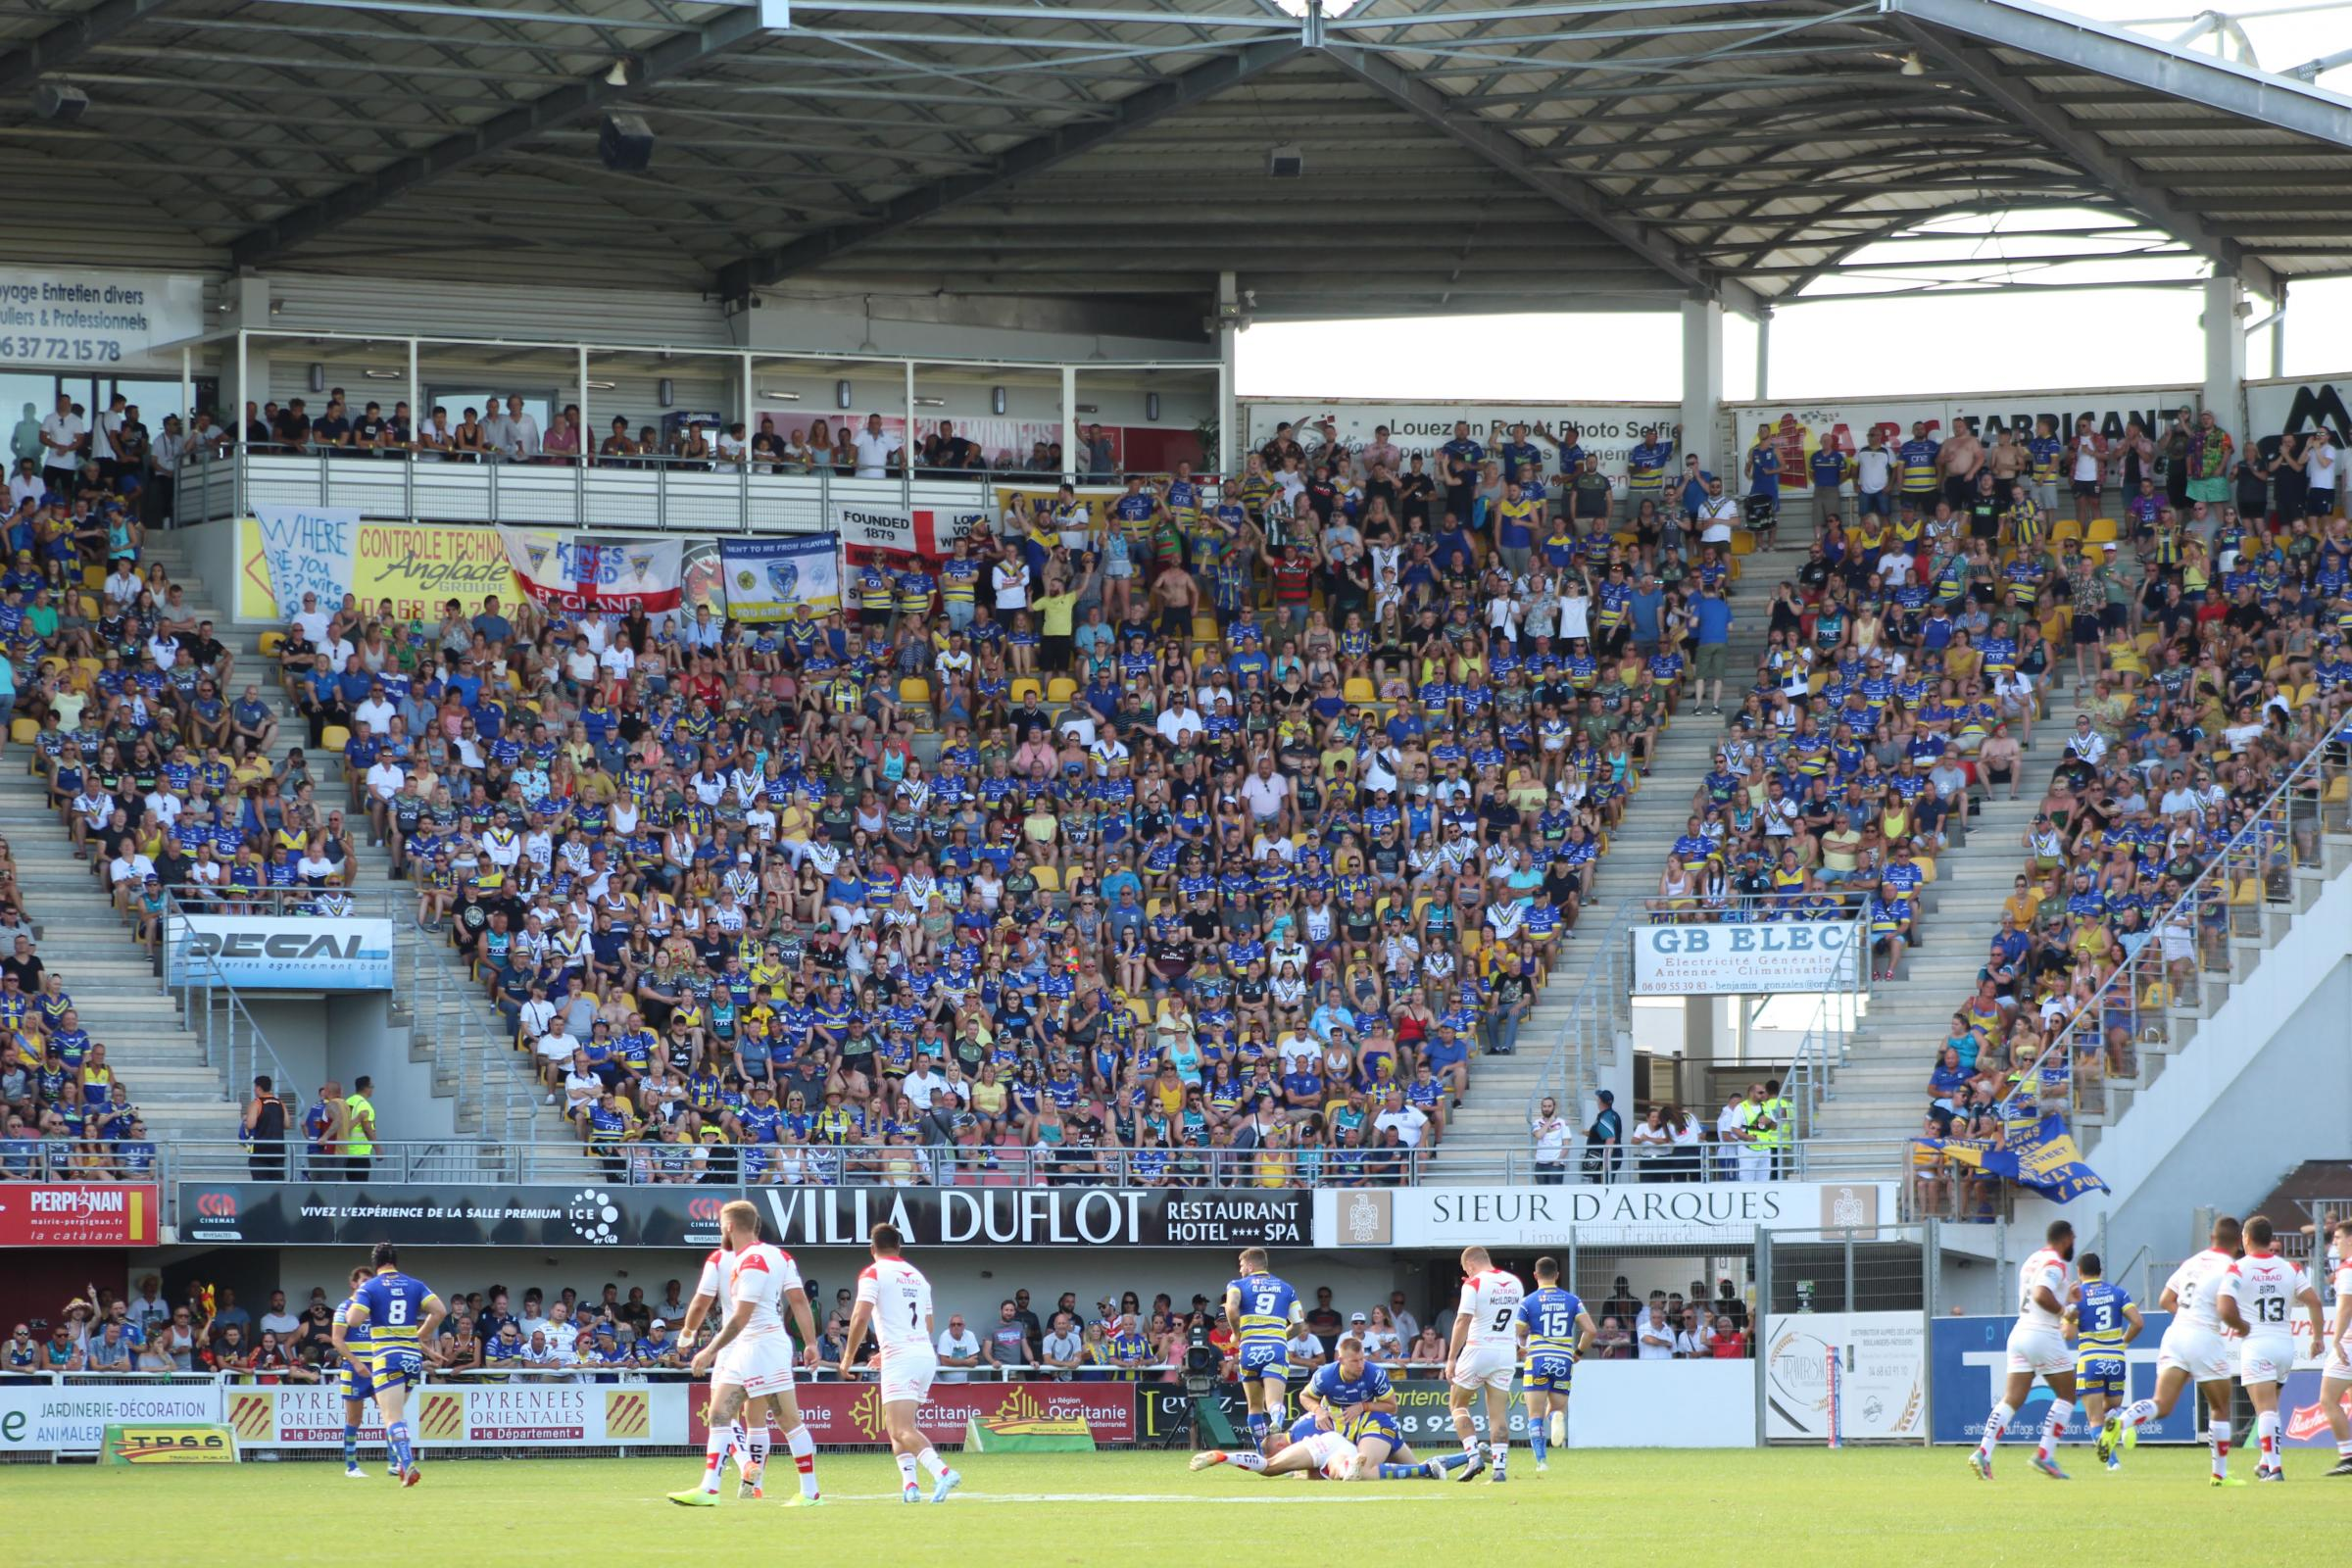 The Wire have not played in Perpignan since August 2019.